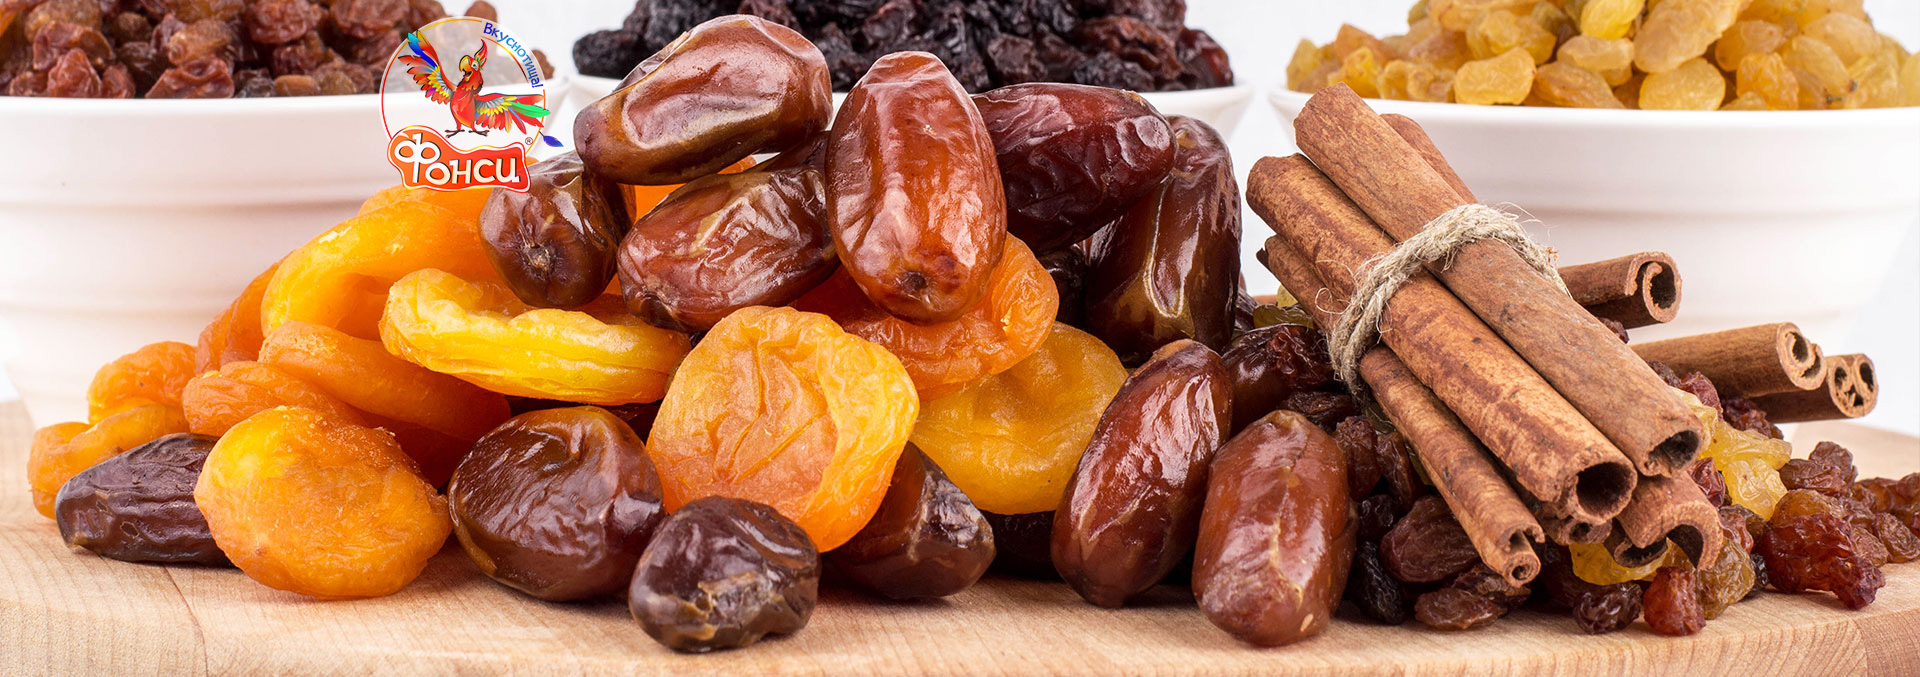 1-dried-apricots